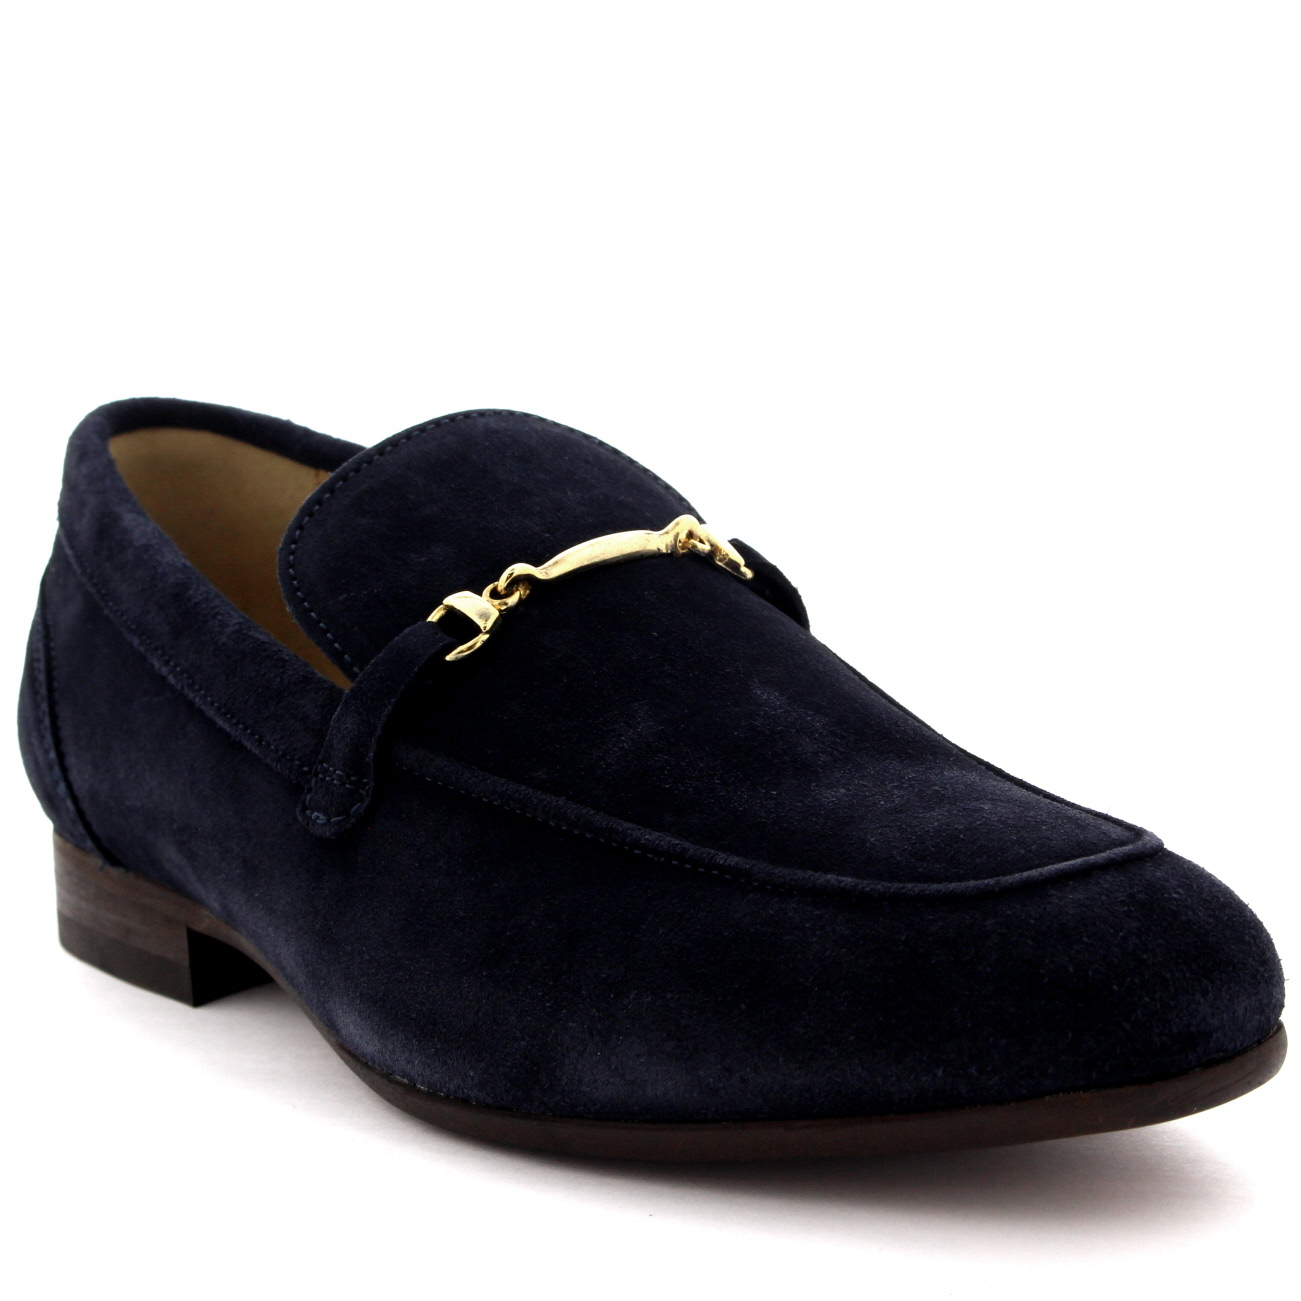 5e50a80258ec Details about Mens H By Hudson Navarre Suede Smart Work Shoes Office Slip  On Loafers US 7-13